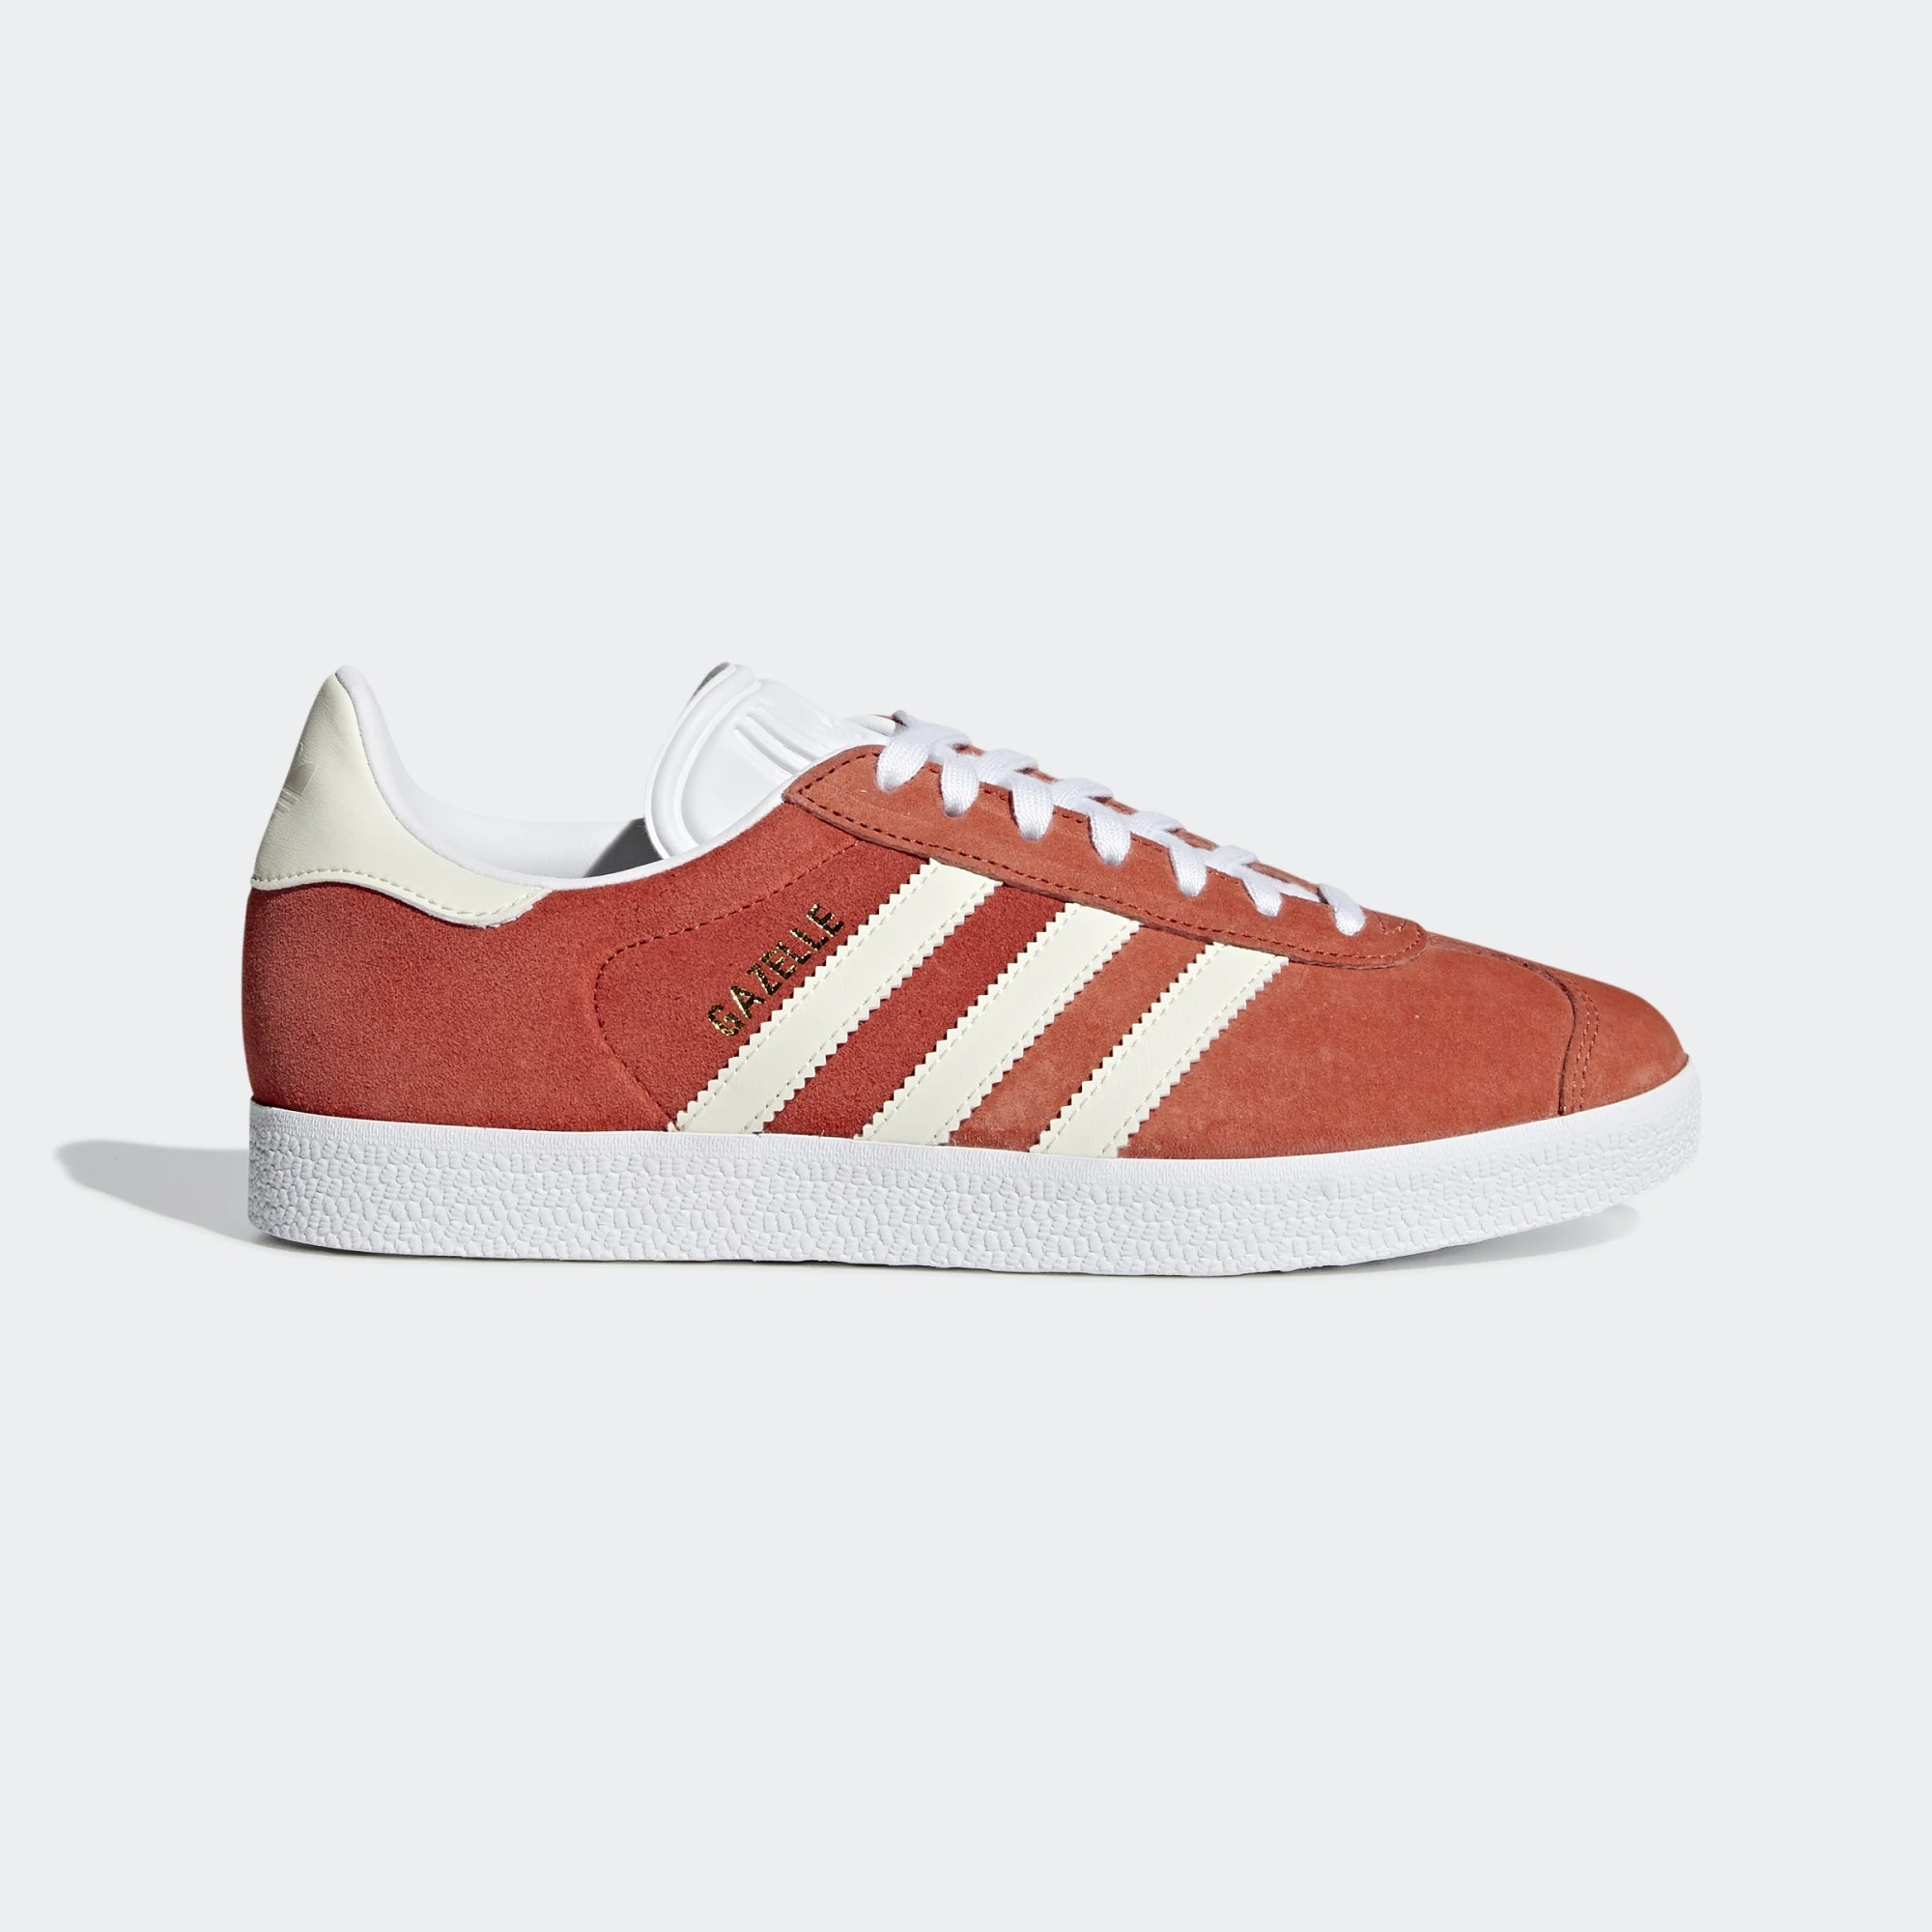 adidas Gazelle Shoes Orange CG6067